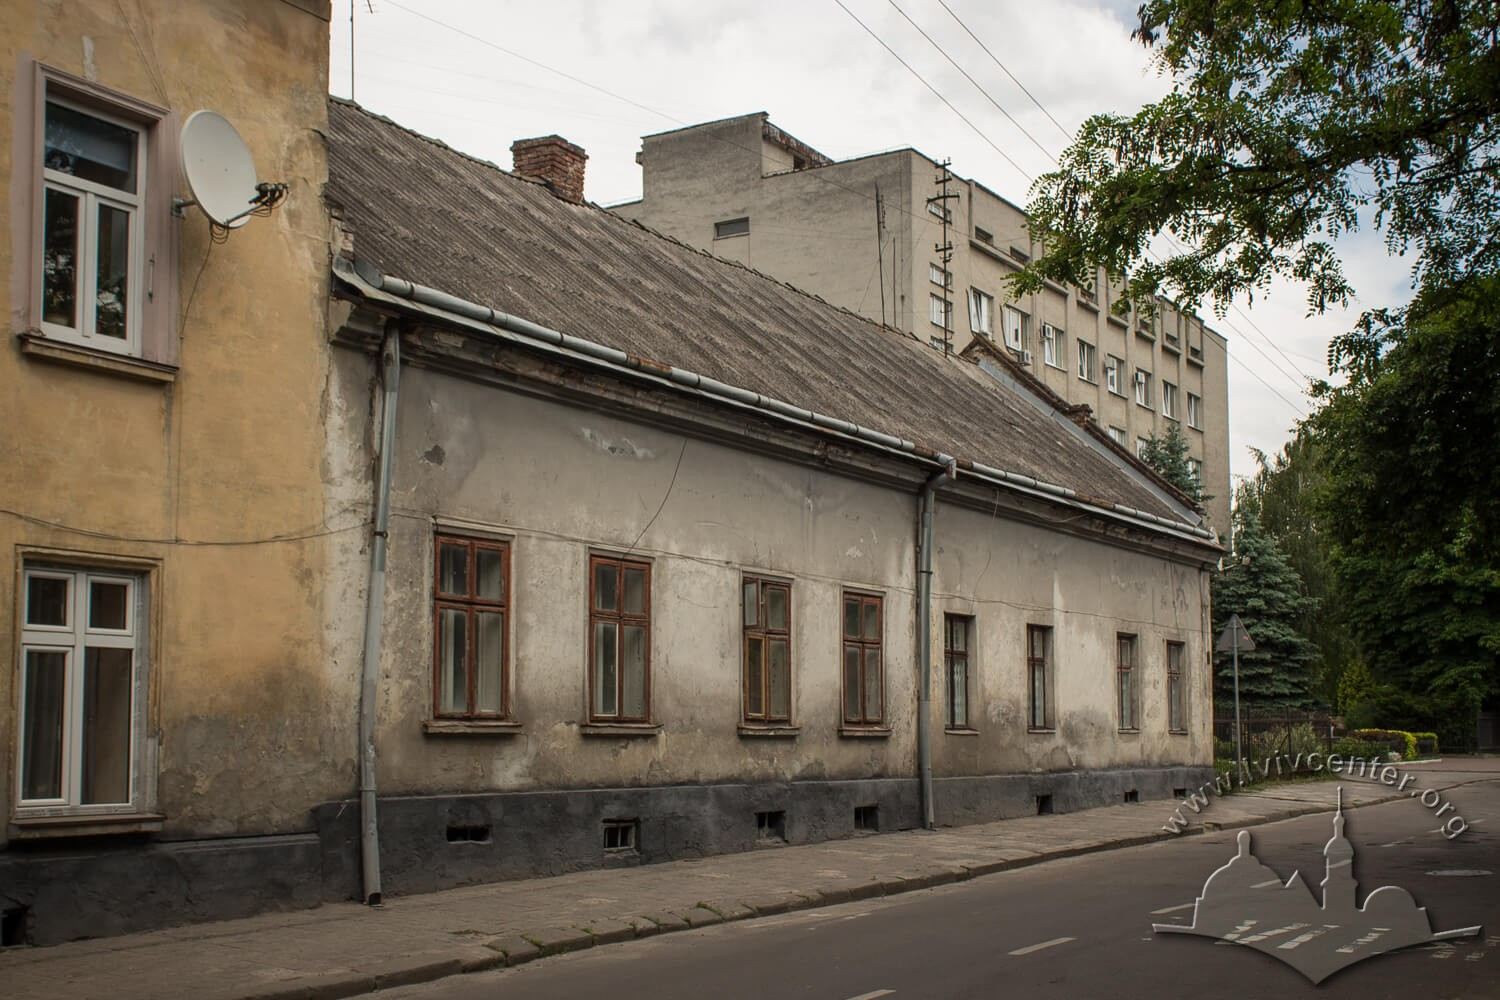 Vul. Donetska, 11. Former residential building of German Schneider family who owned a big vegetable farm in Pidzamche in 19th century/Photo courtesy of Olha Zarechnyuk, 2016